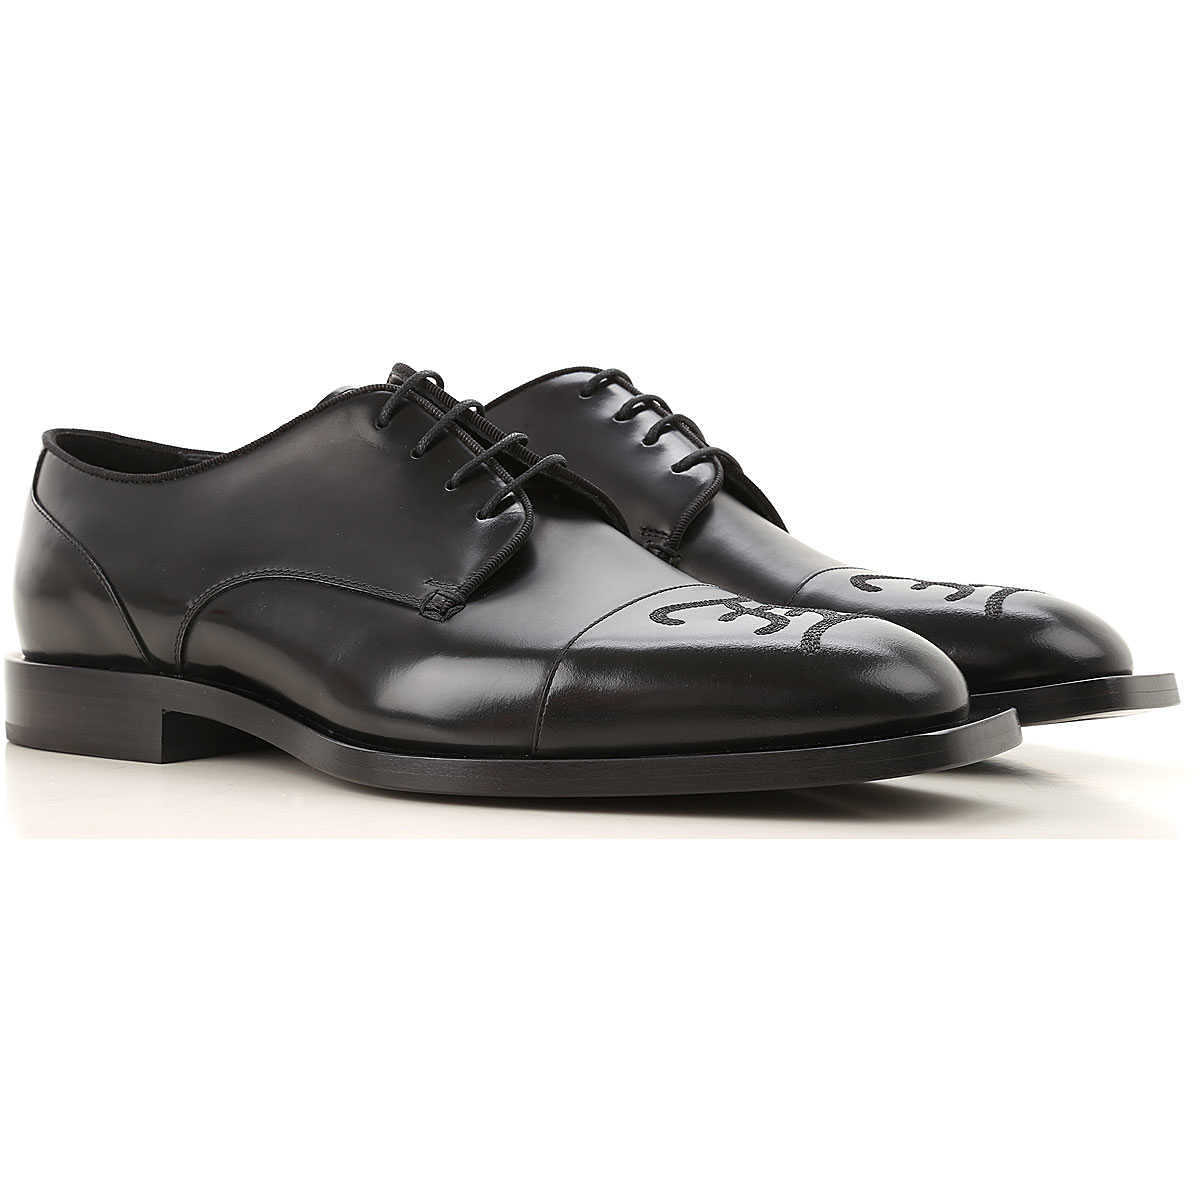 Fendi Lace Up Shoes for Men Oxfords 10 6 6.5 7 7.5 8 8.5 9 Derbies and Brogues UK - GOOFASH